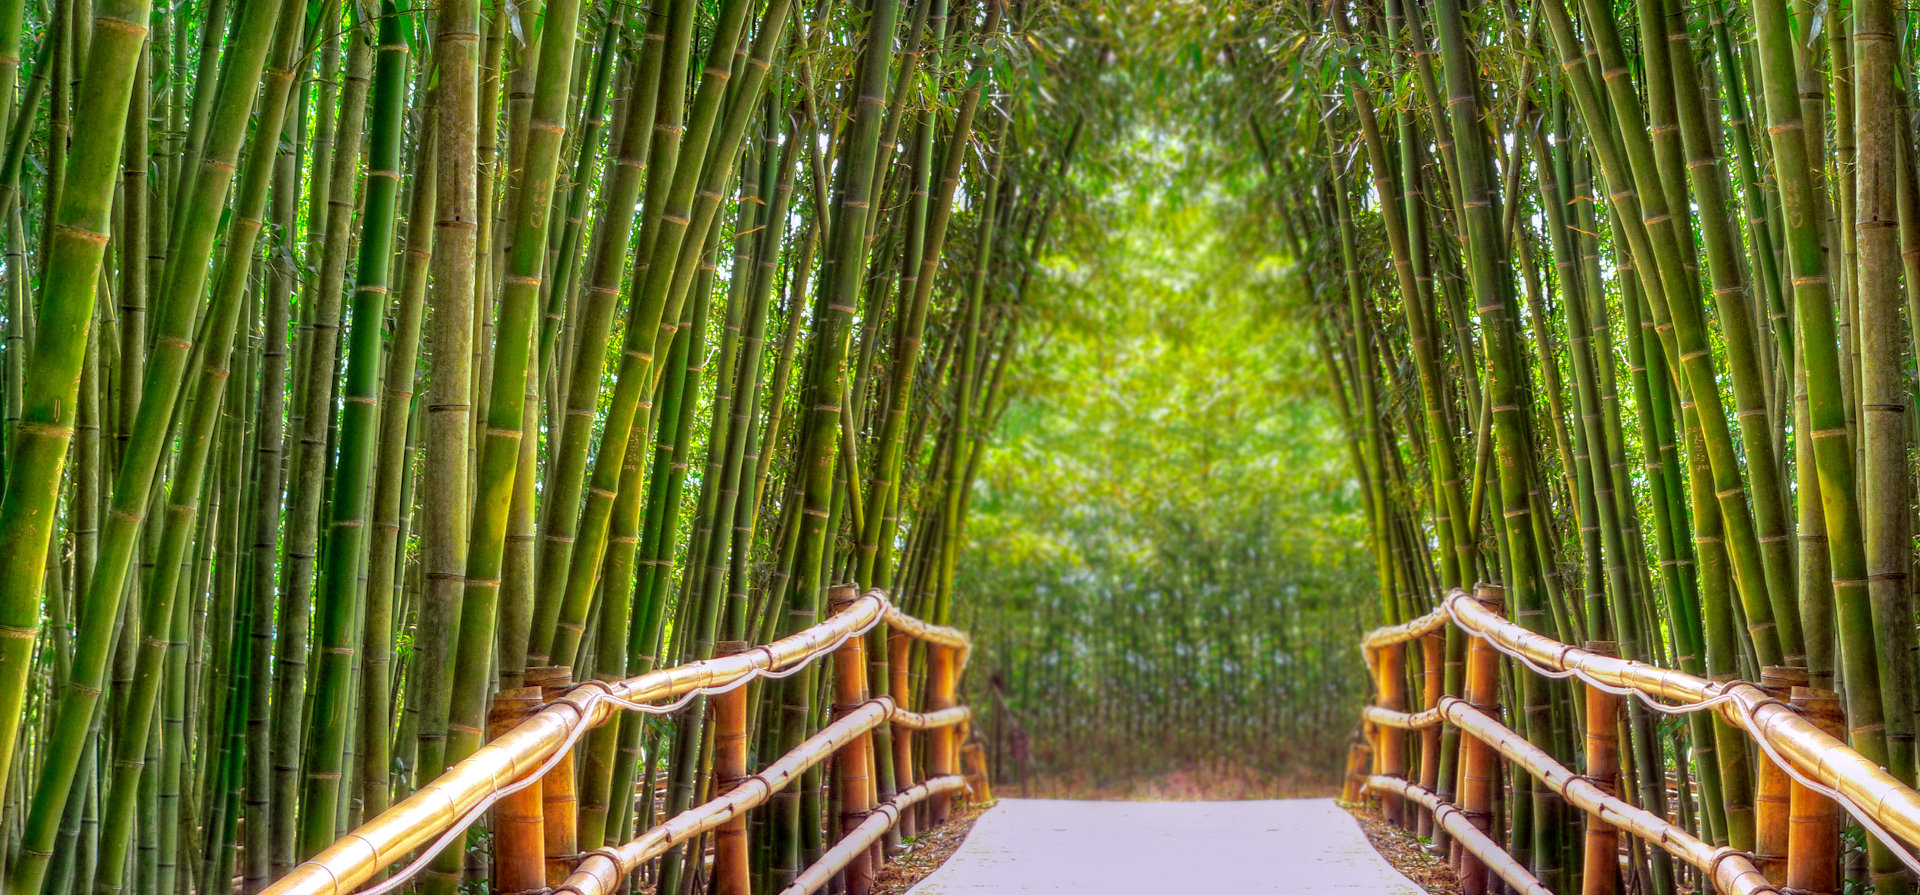 BAMBOO ALLEY © Andreasfischer | Dreamstime.com